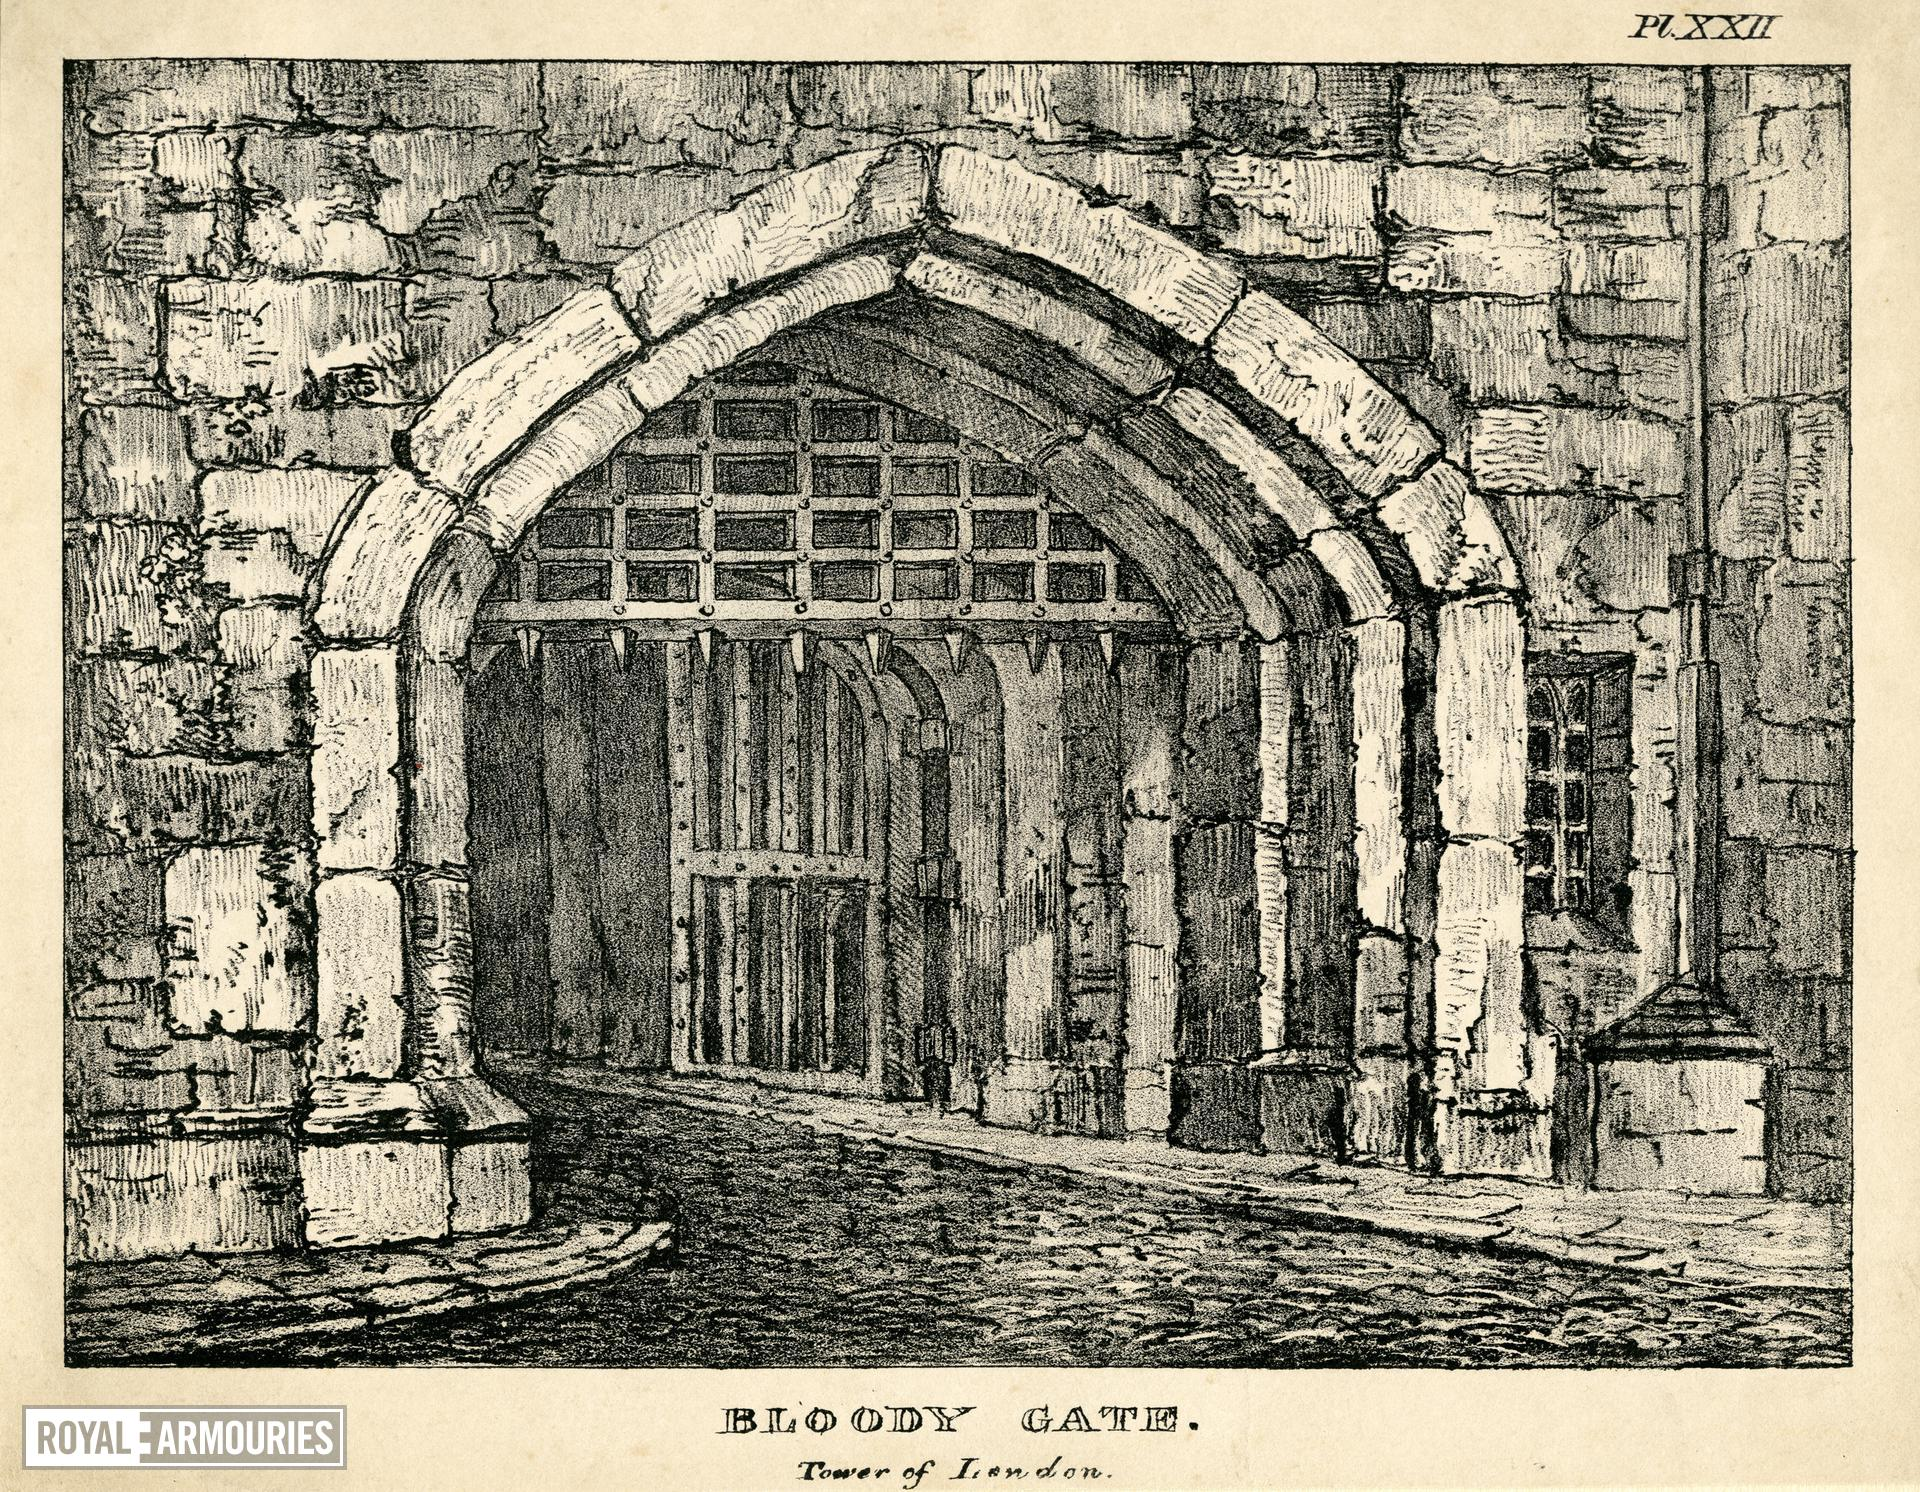 Print 'Bloody Gate, Tower of London', about 1830.